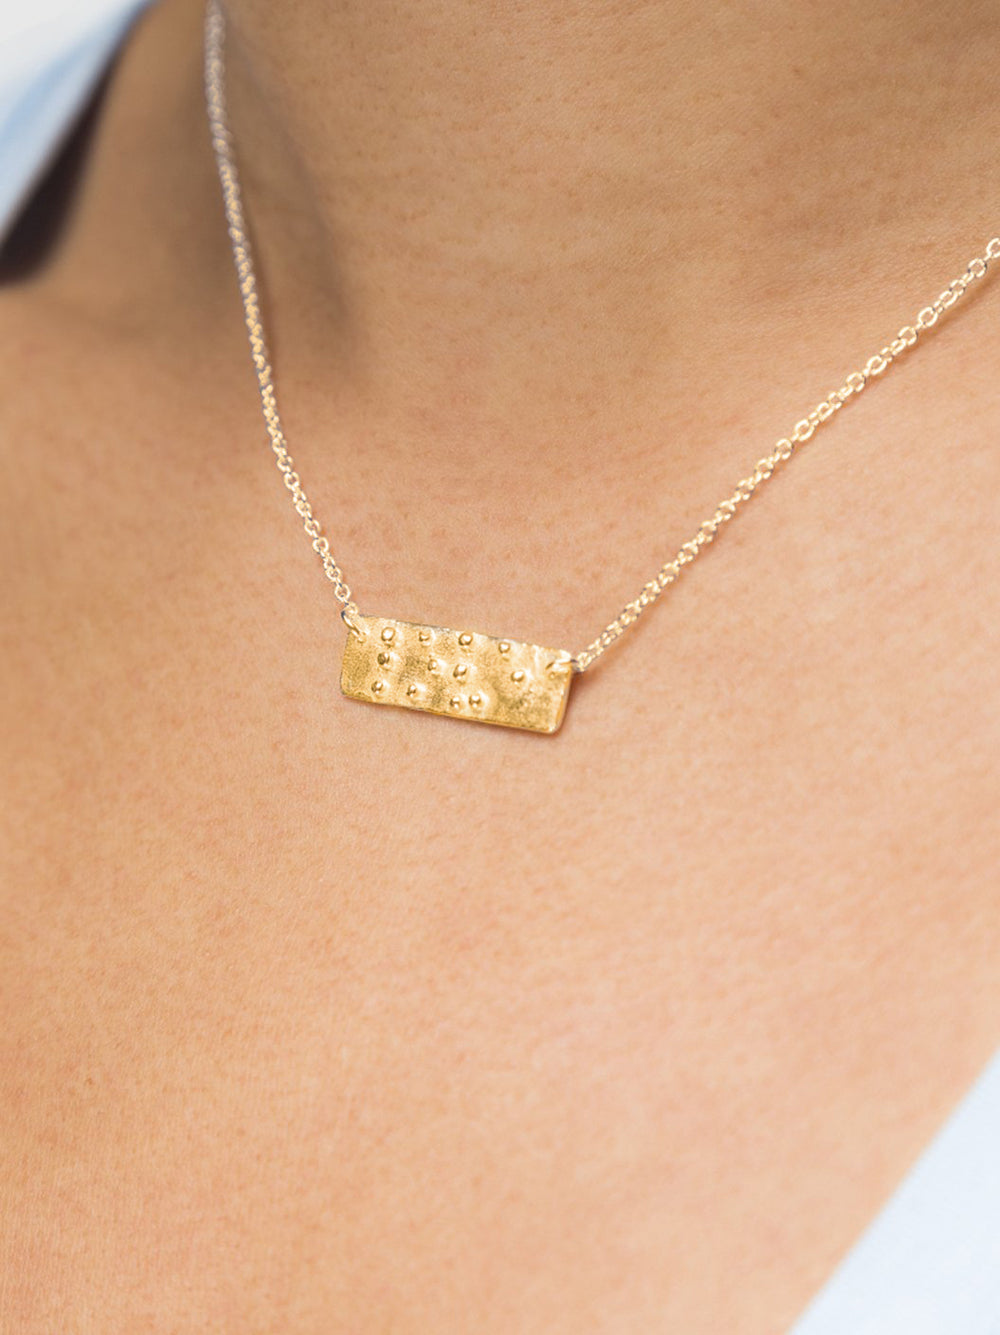 Two Blind Brothers - Gift Love is Blind Gold Plated Necklace Love-is-Blind-Gold-Plated-Necklace